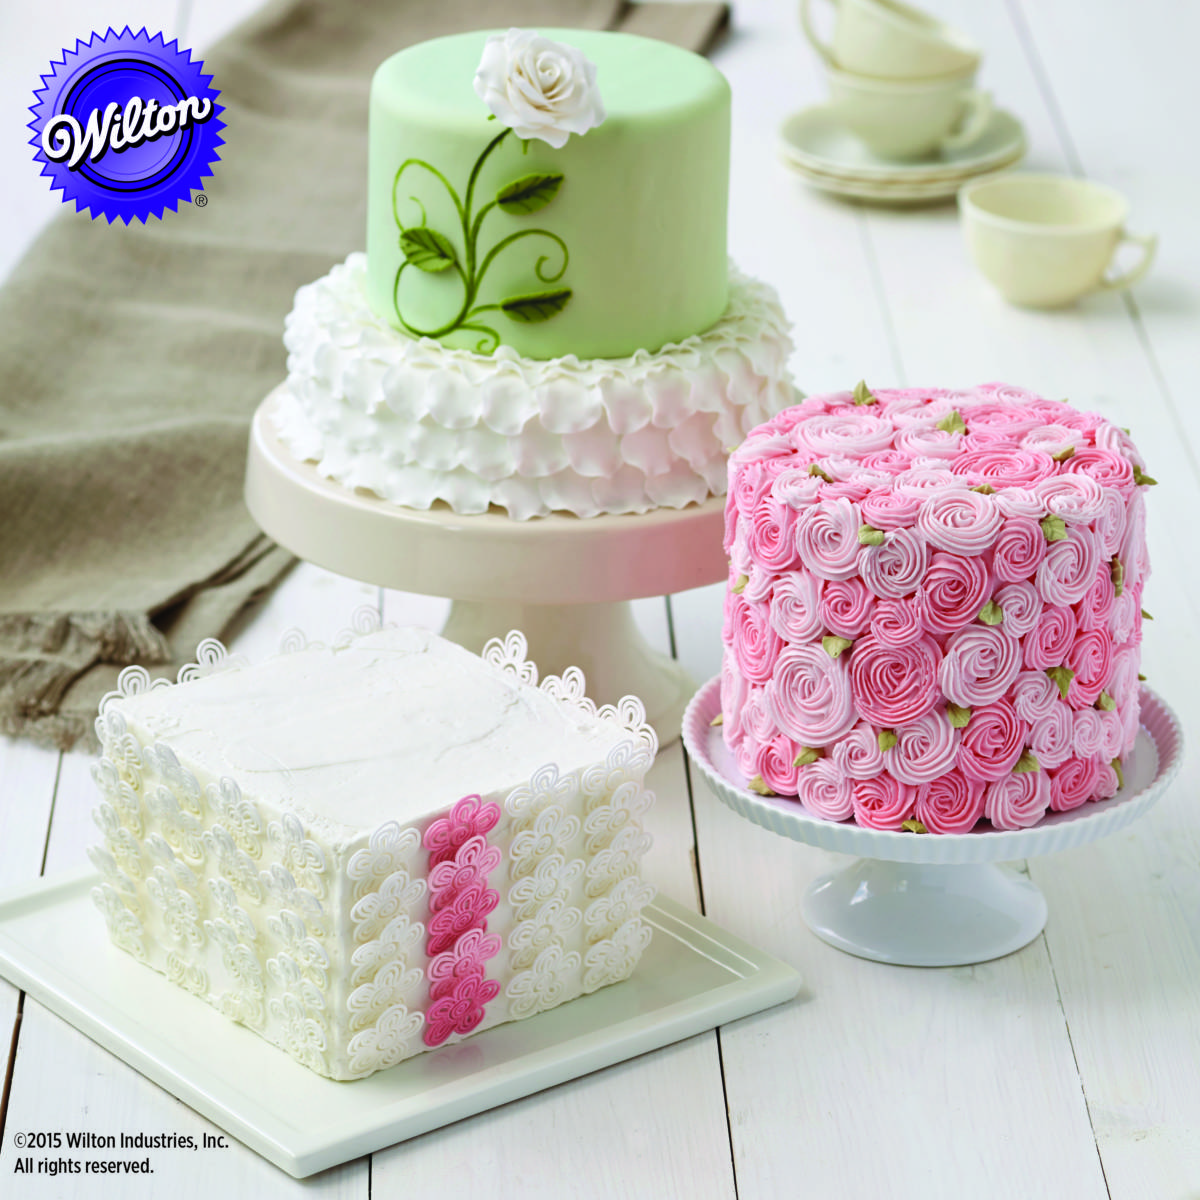 wilton wedding cake decorations win one of two wilton cake amp cupcake decorating courses 27515